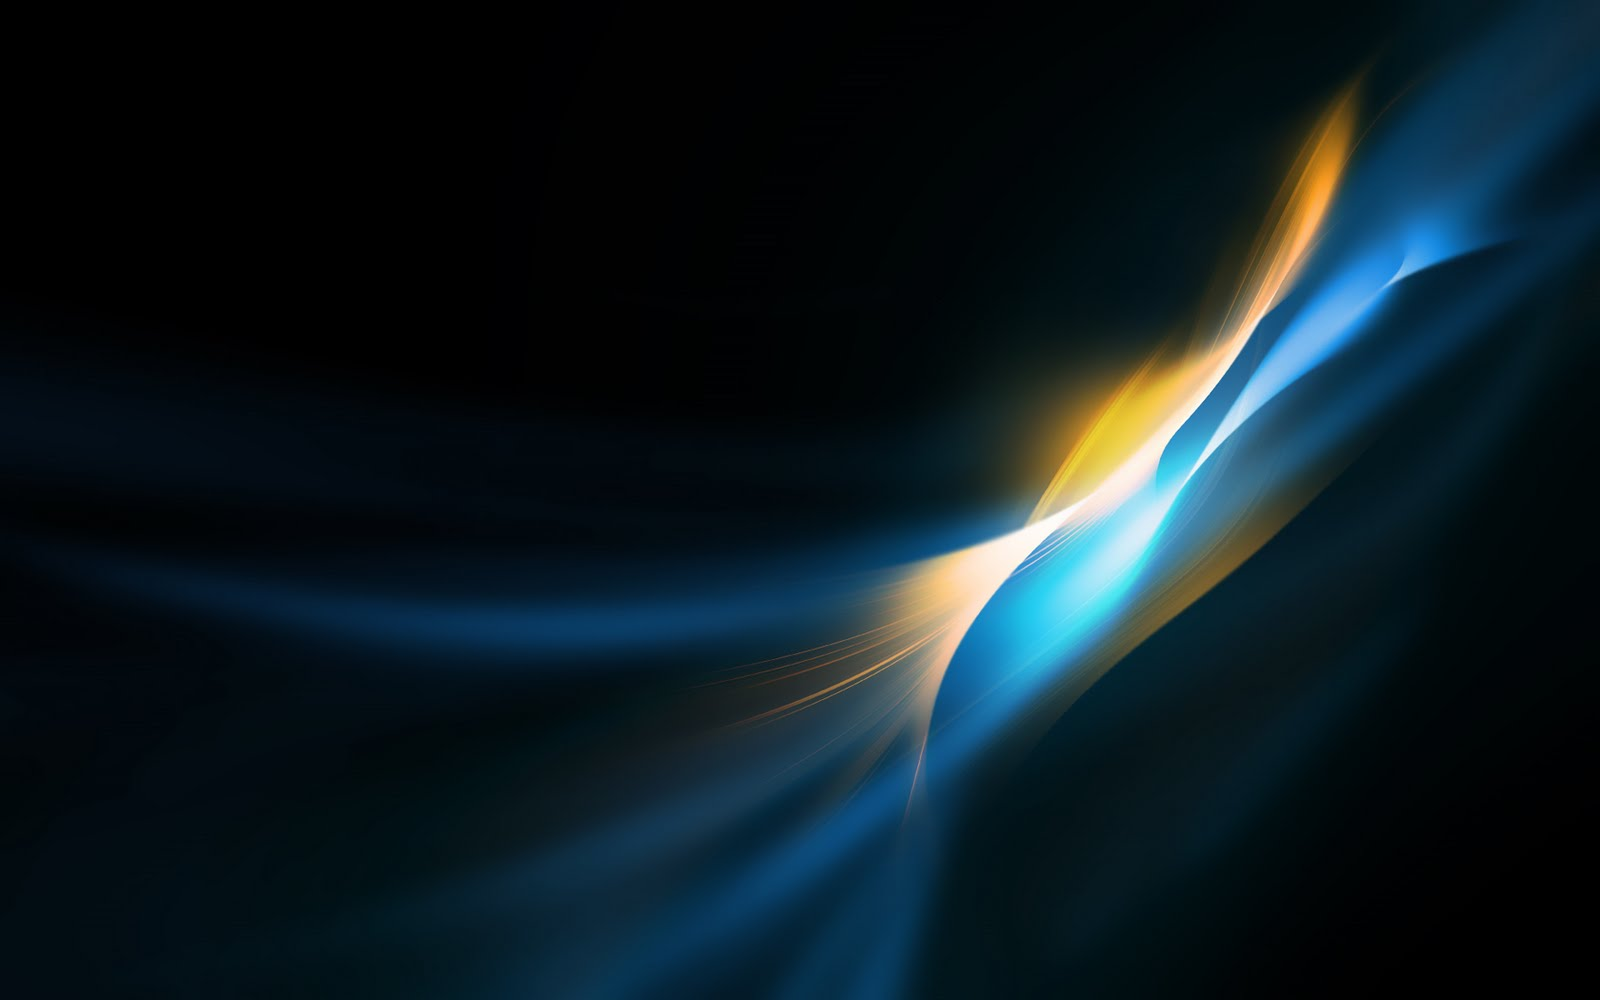 Abstract Blue Wallpaper   Black Background   Poze Imagini Desktop 1600x1000